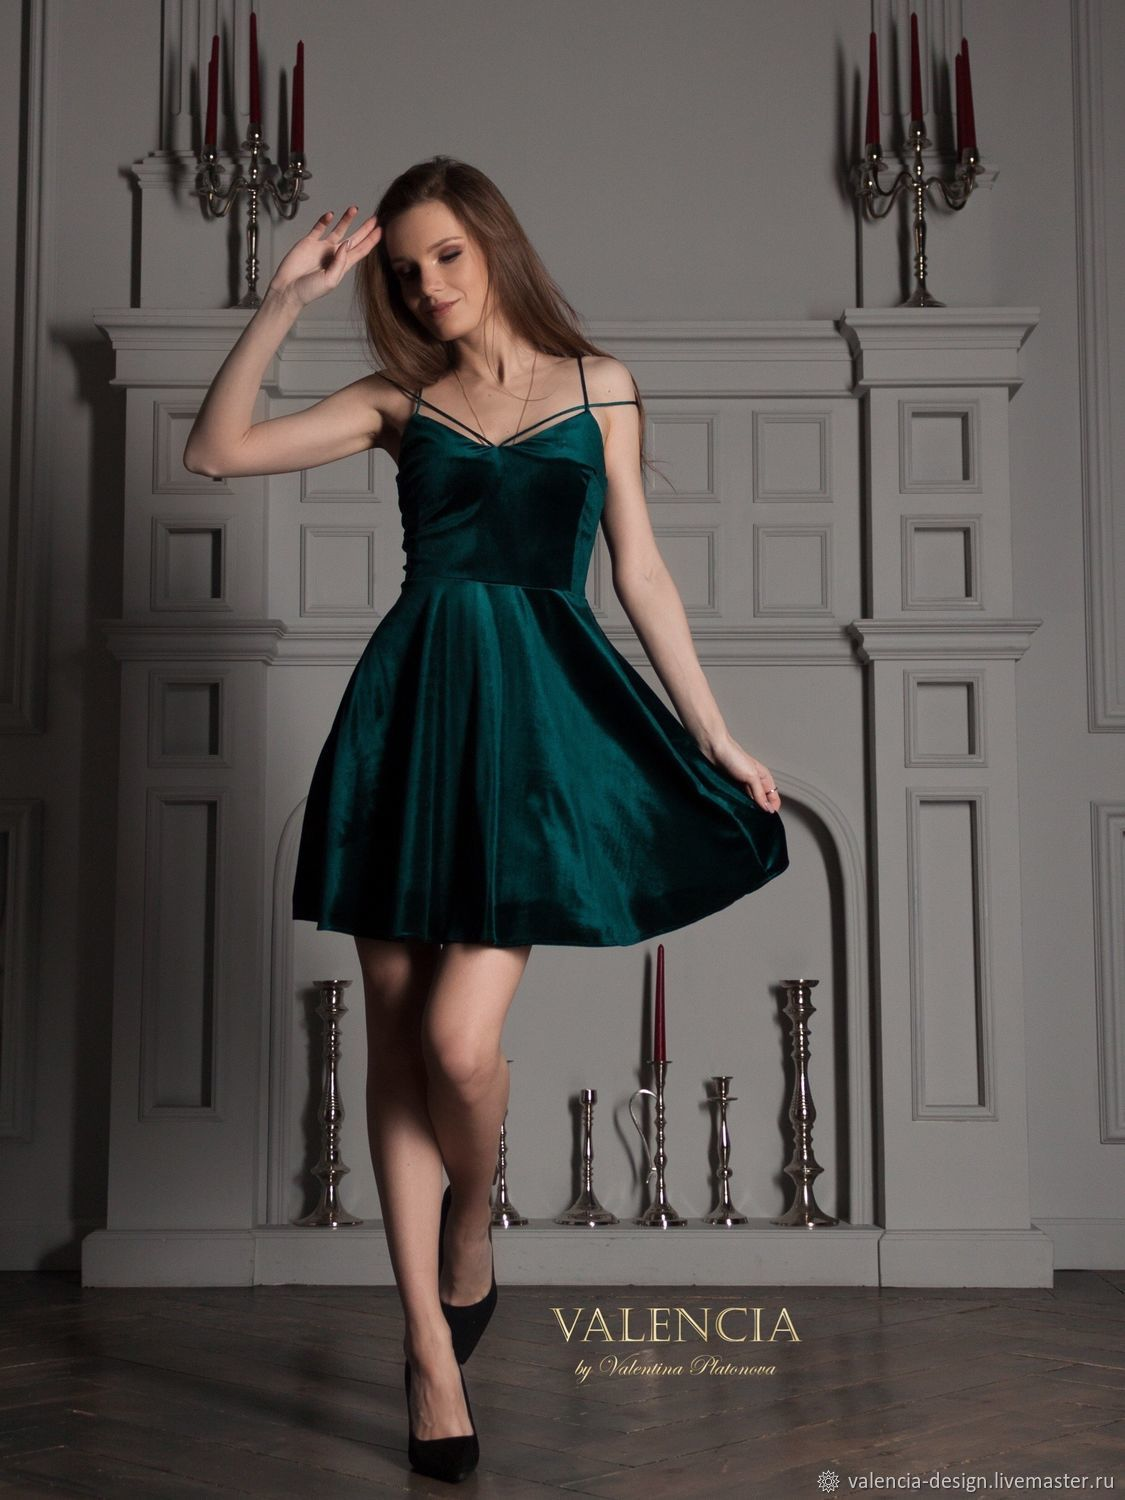 Giselle dress made of velvet (can be made in midi length), Dresses, Moscow,  Фото №1